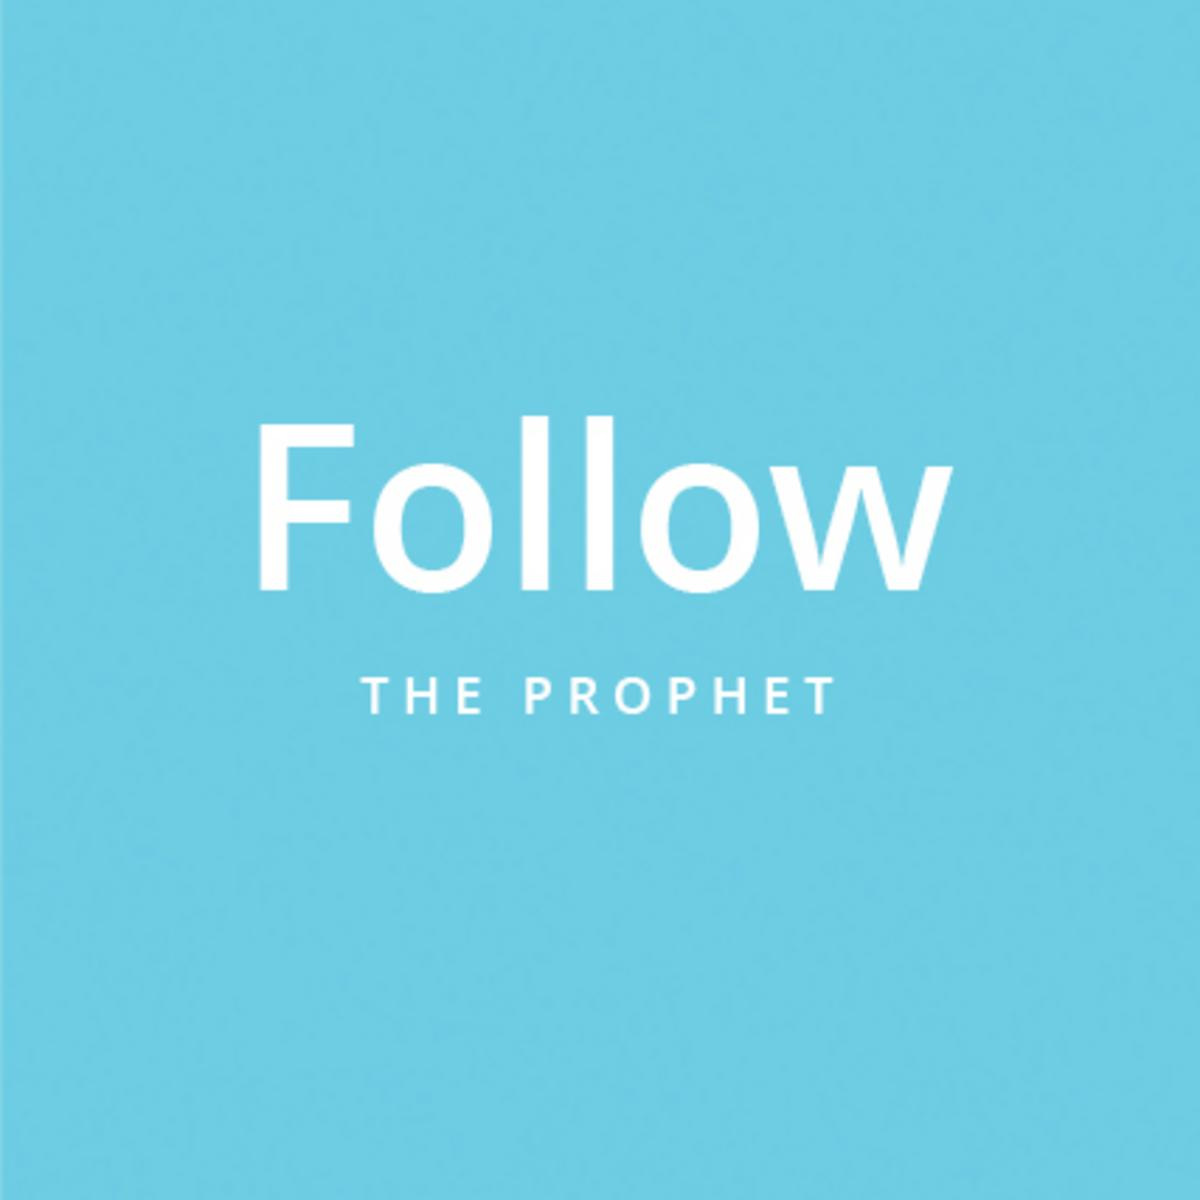 Following the prophet